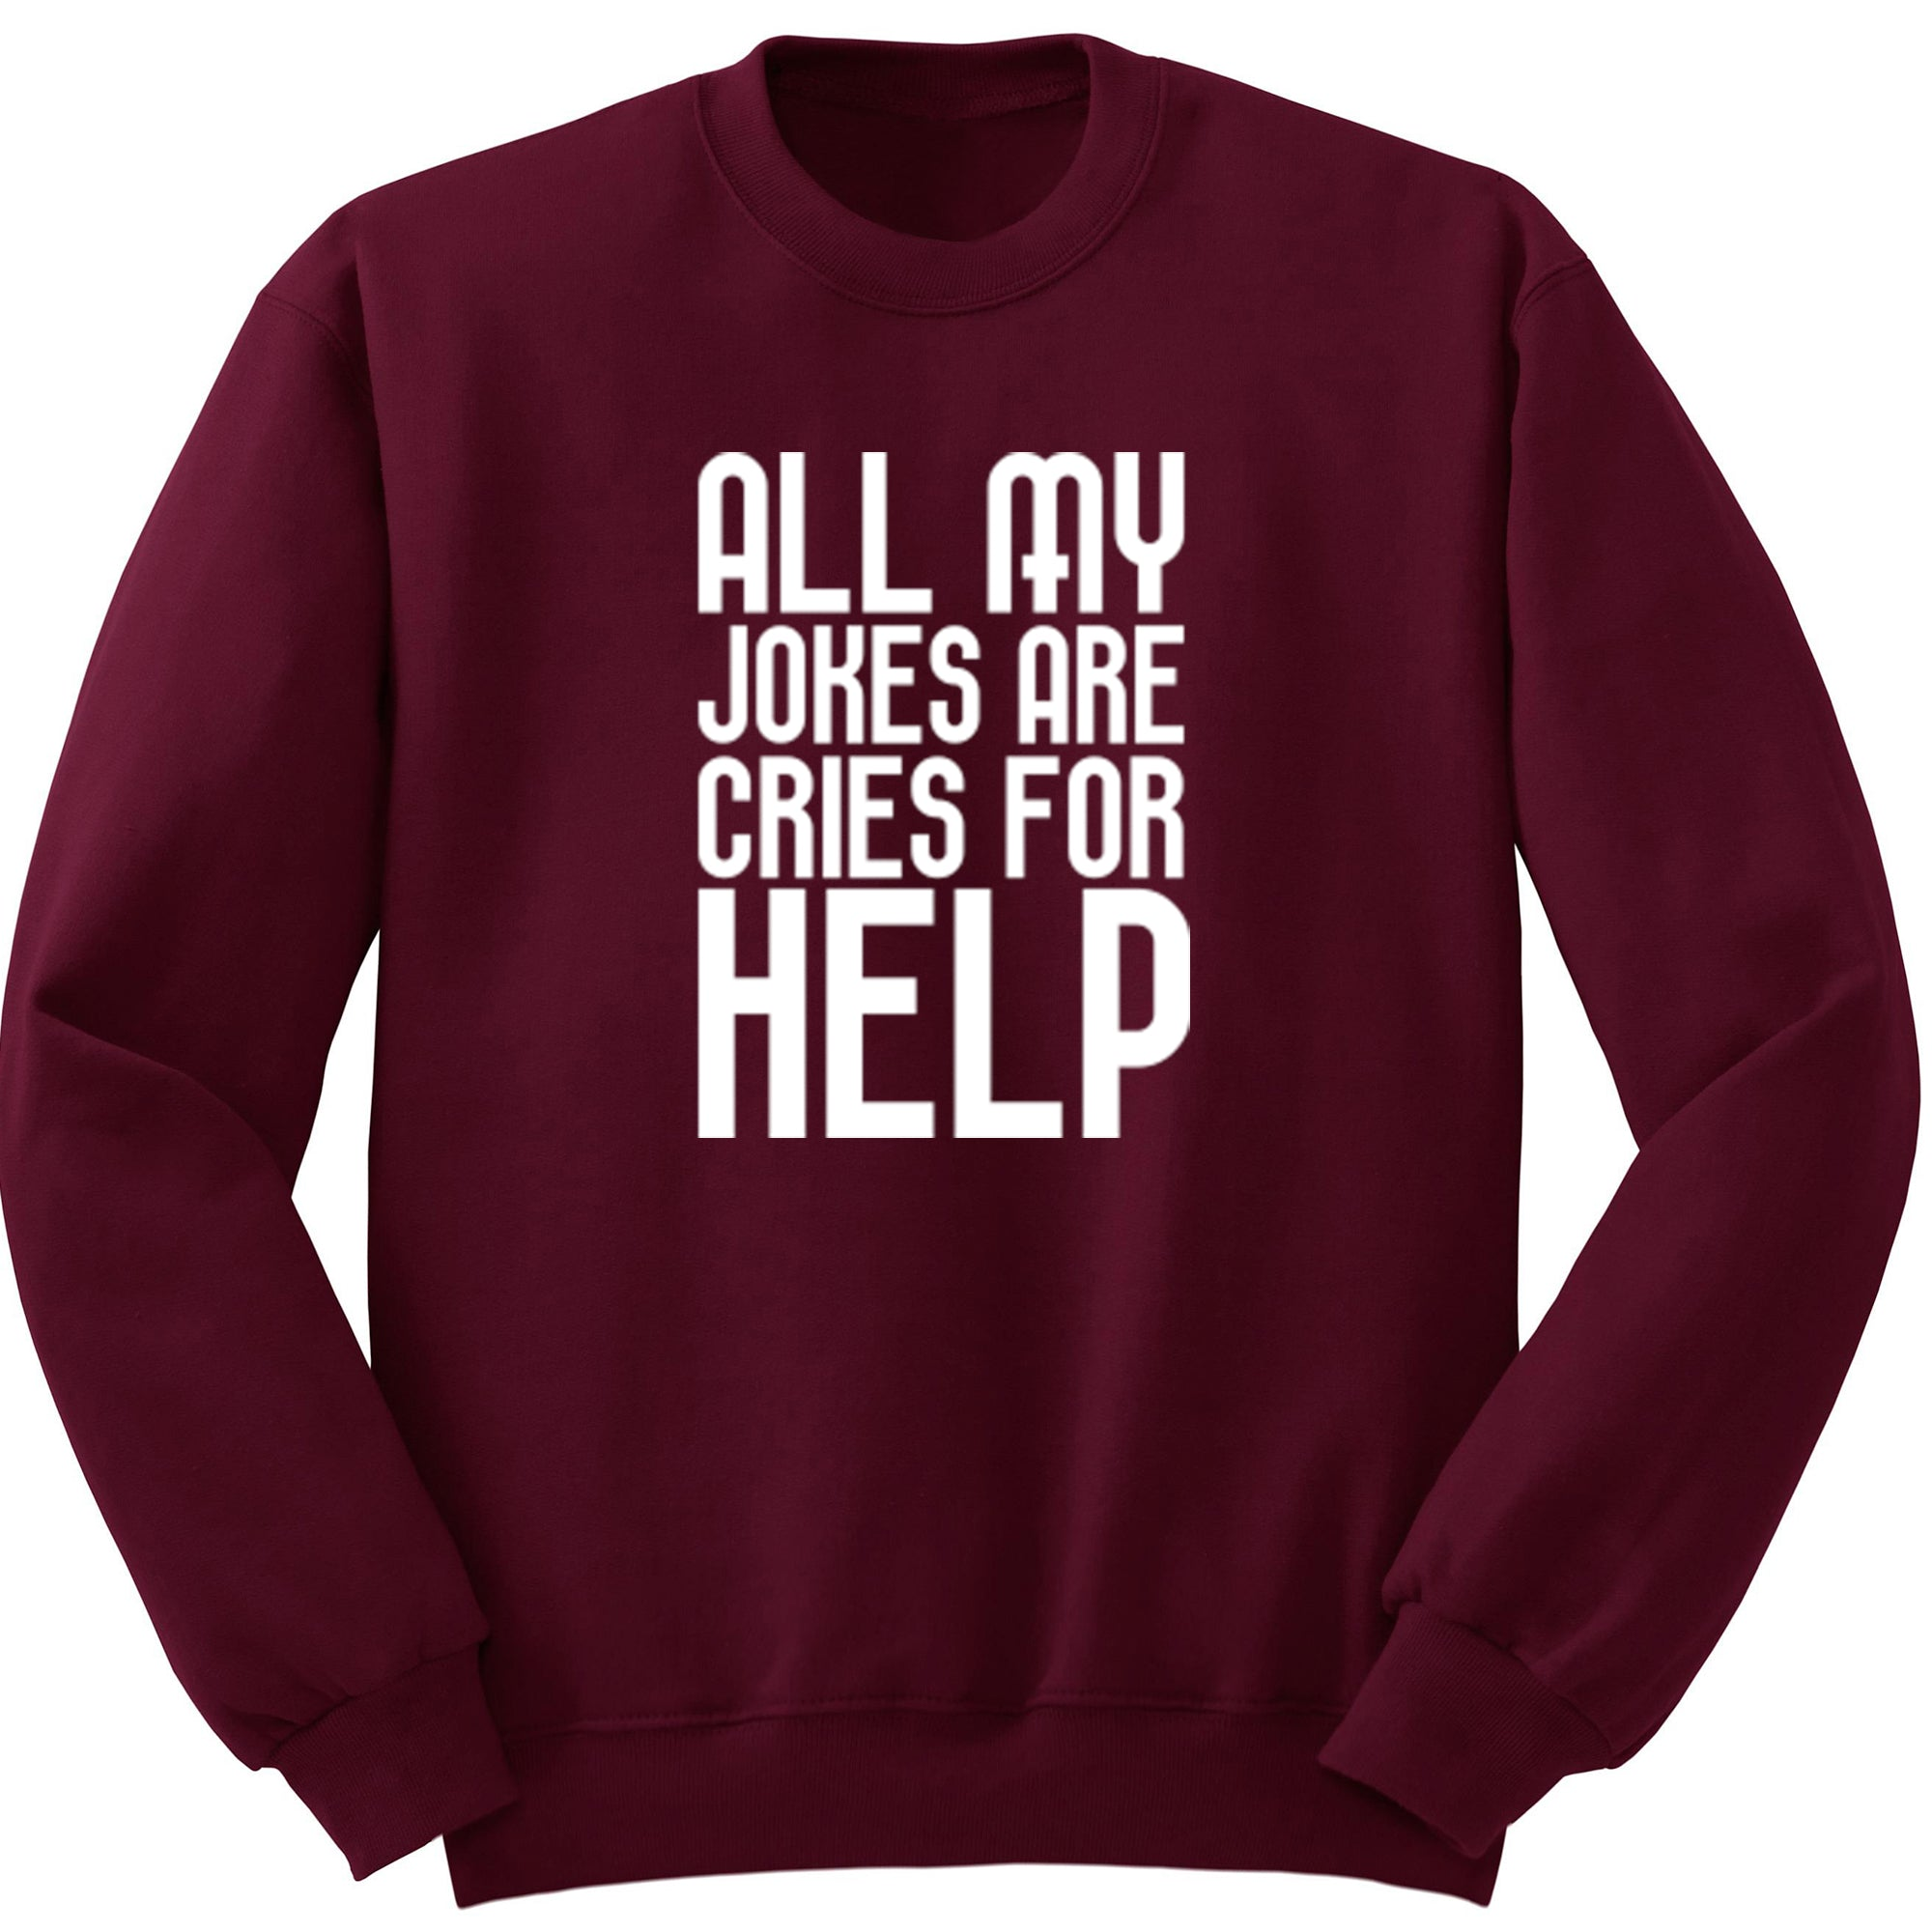 All My Jokes Are Cries For Help Unisex Jumper S0317 - Illustrated Identity Ltd.